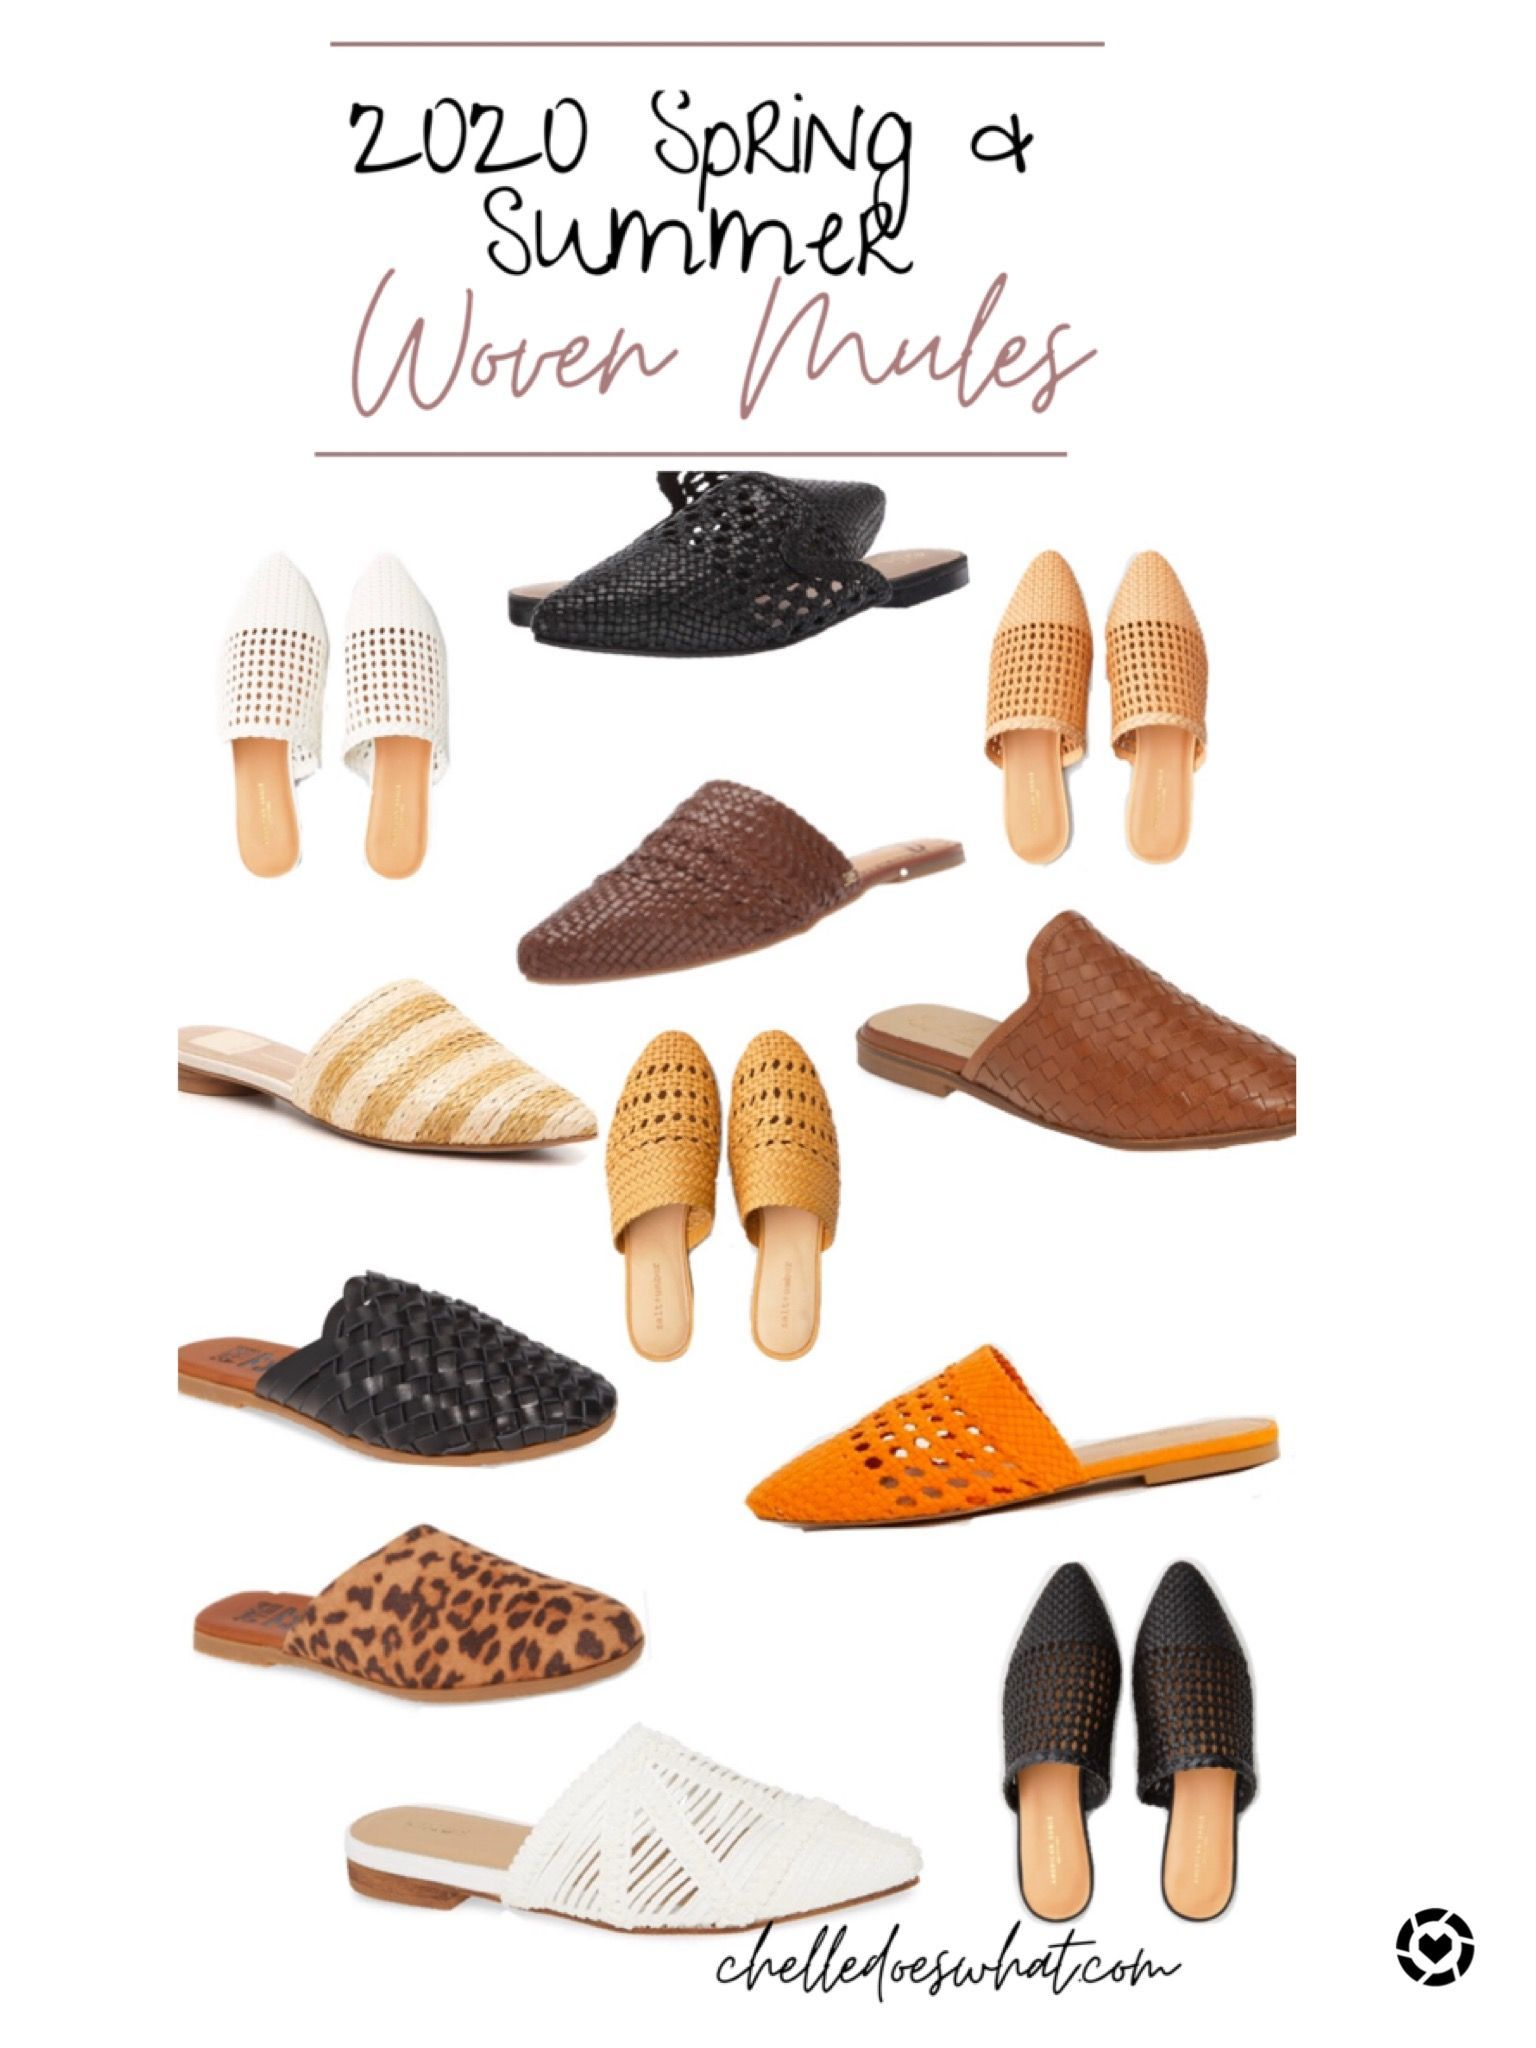 Pin By Didem On Kiyafet Spring Shoes Casual Spring Fashion Trends Spring Trends